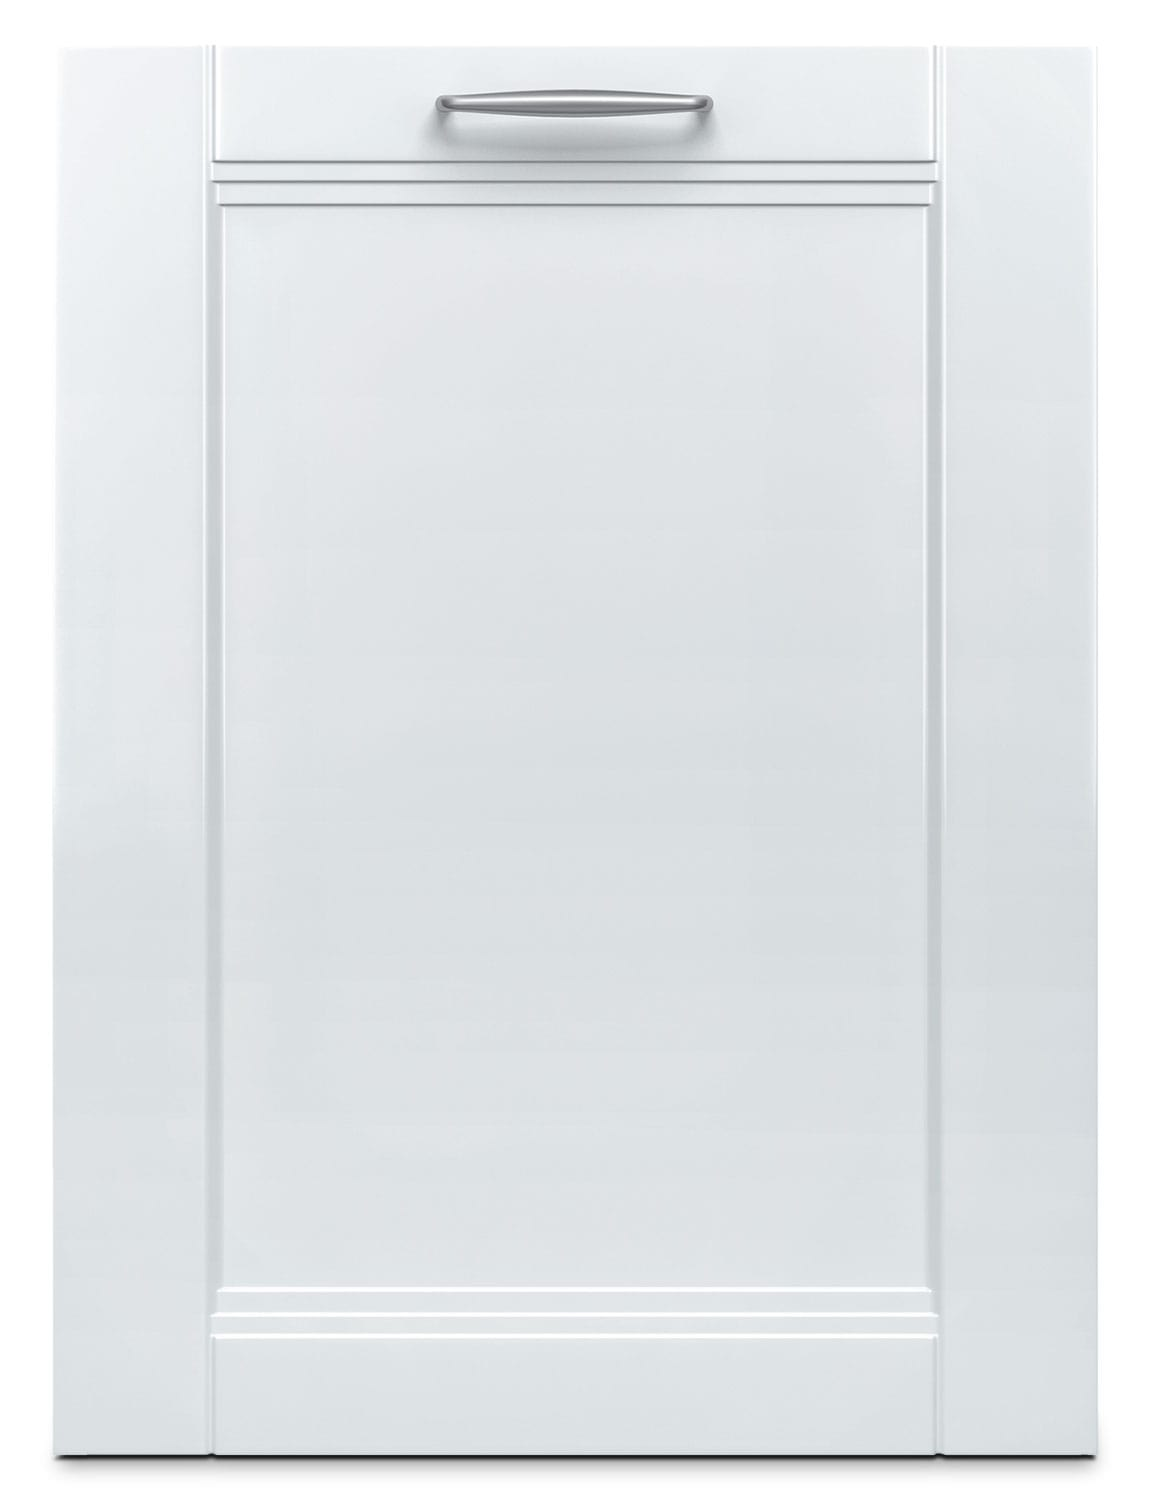 "Clean-Up - Bosch Custom Panel-Ready 24"" Dishwasher - SHV53T53UC"